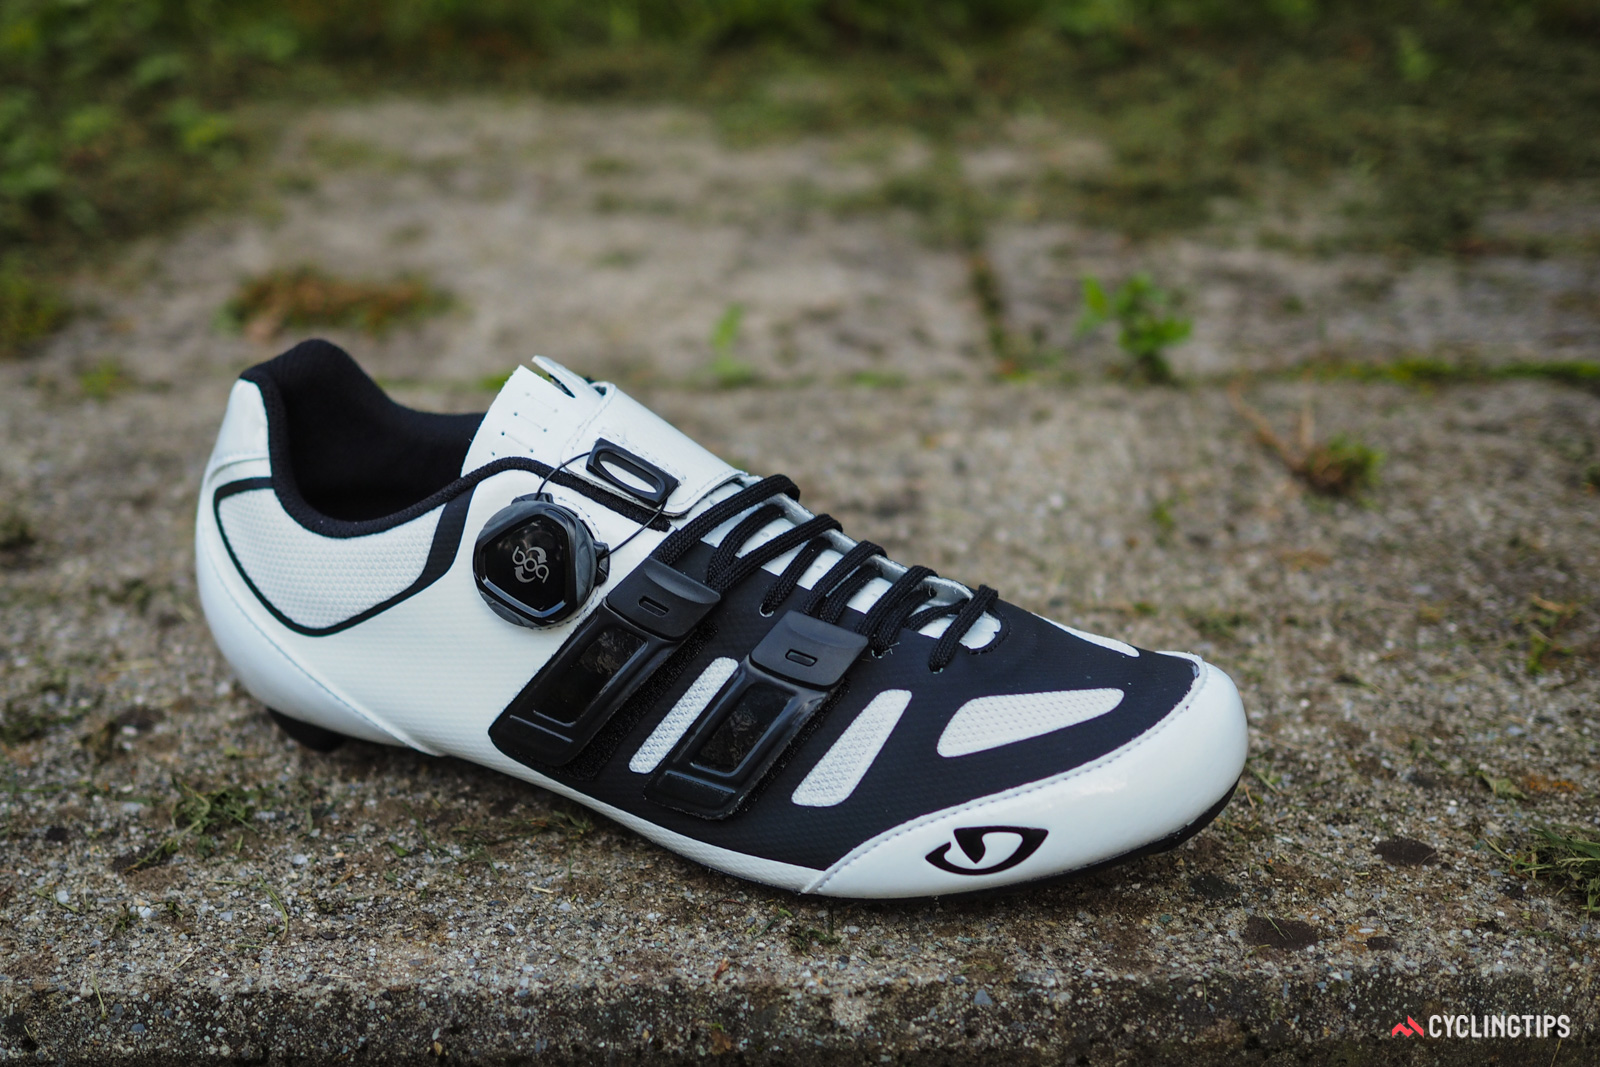 The Giro Sentrie Techlace shares the overall closure design with the top-end Factor Techlace but with a more conventional upper construction and a Boa L6 dial that omits the flagship IP1's micro-adjustable loosening function.